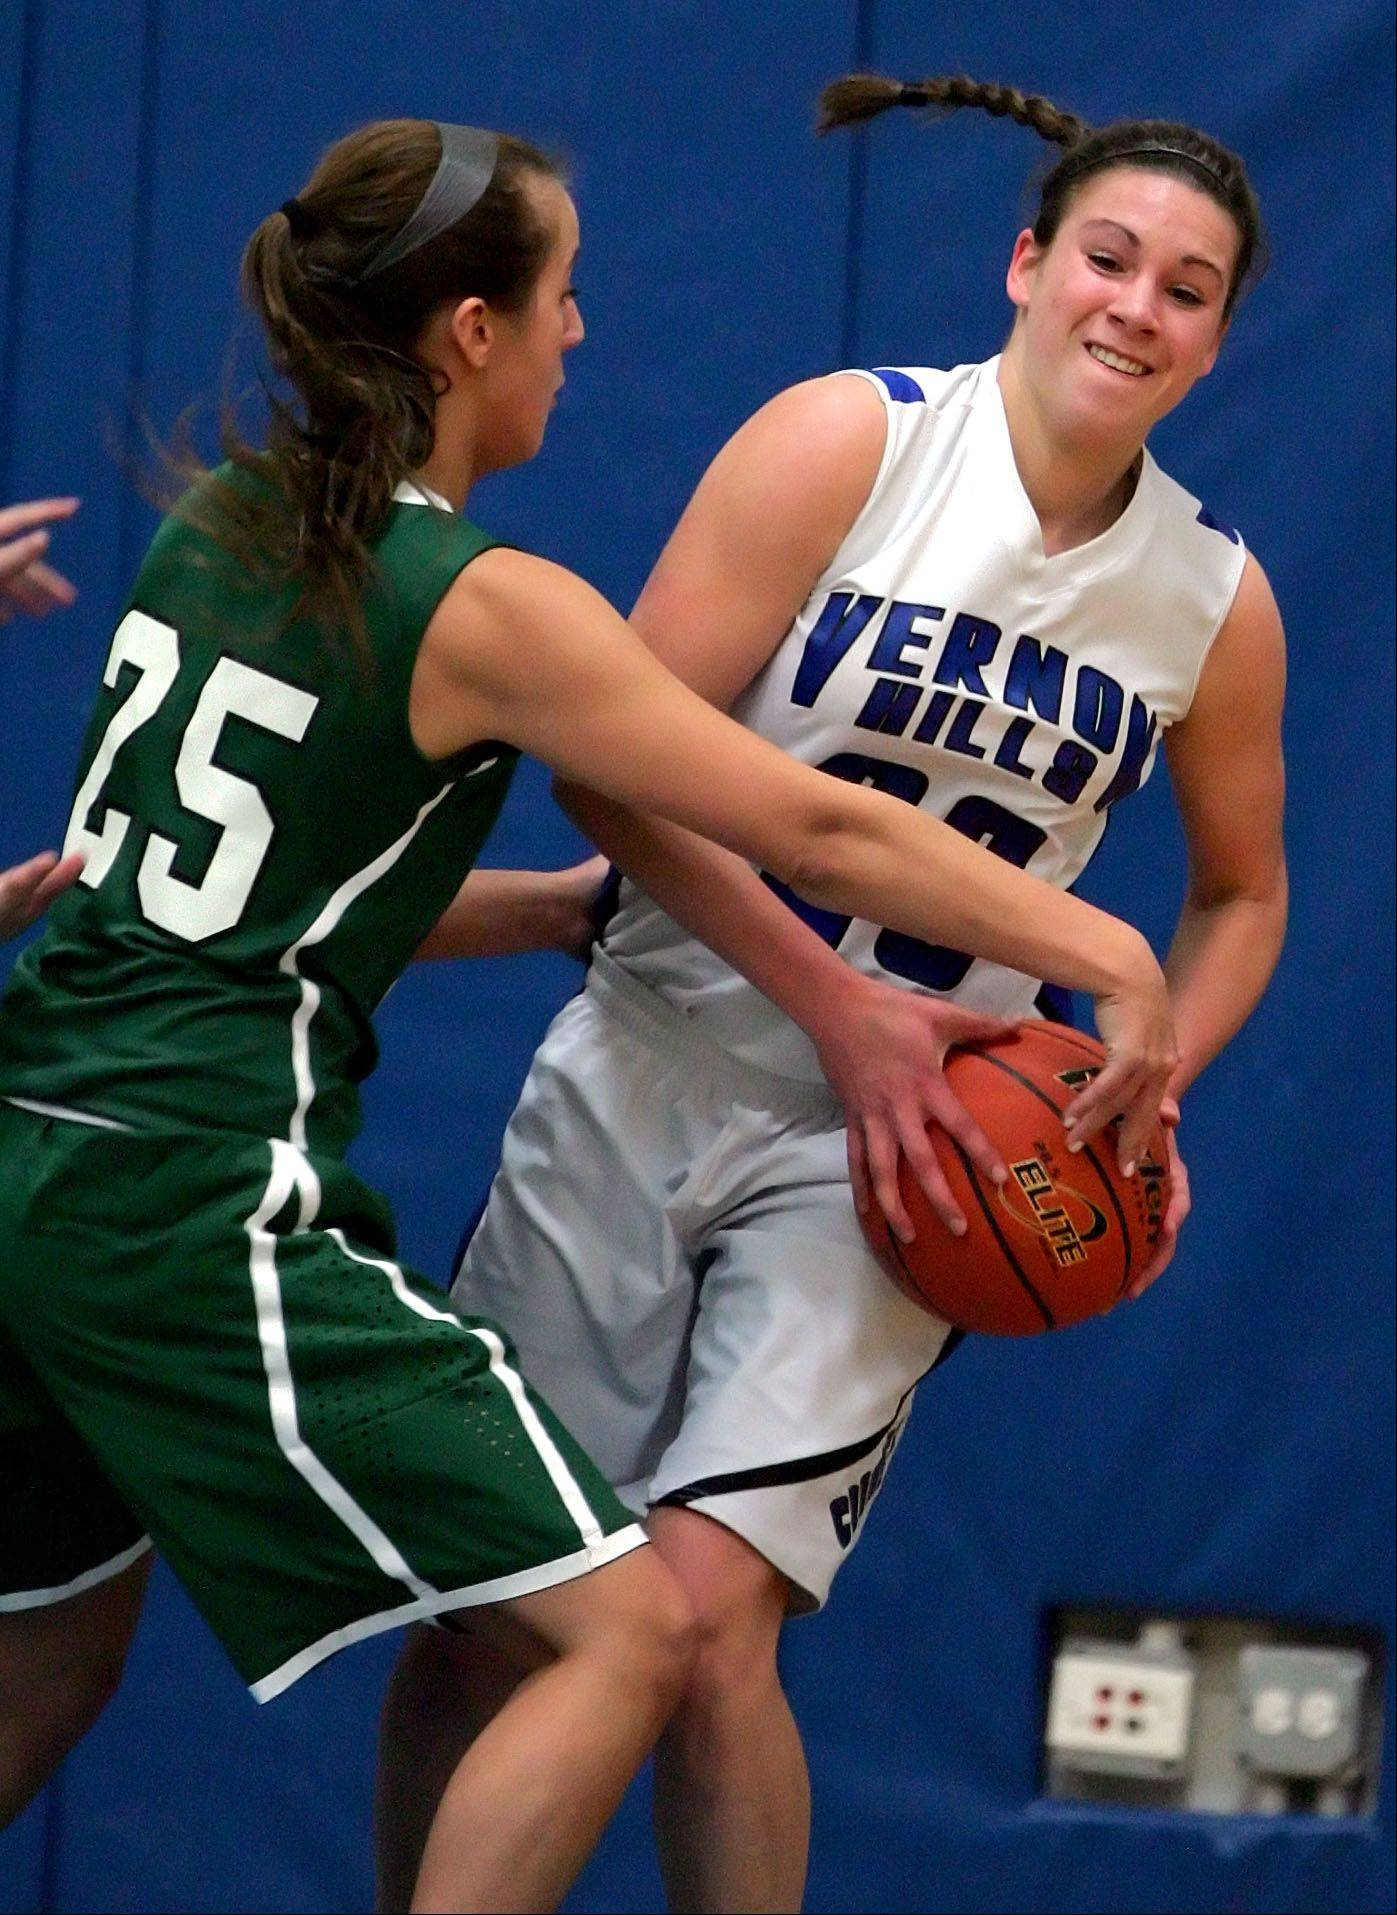 Vernon Hills' Brie Bahlmann, right, looks to pass as Grayslake Central's Taylor Peterson defends during their game Tuesday night at Vernon Hills High School.